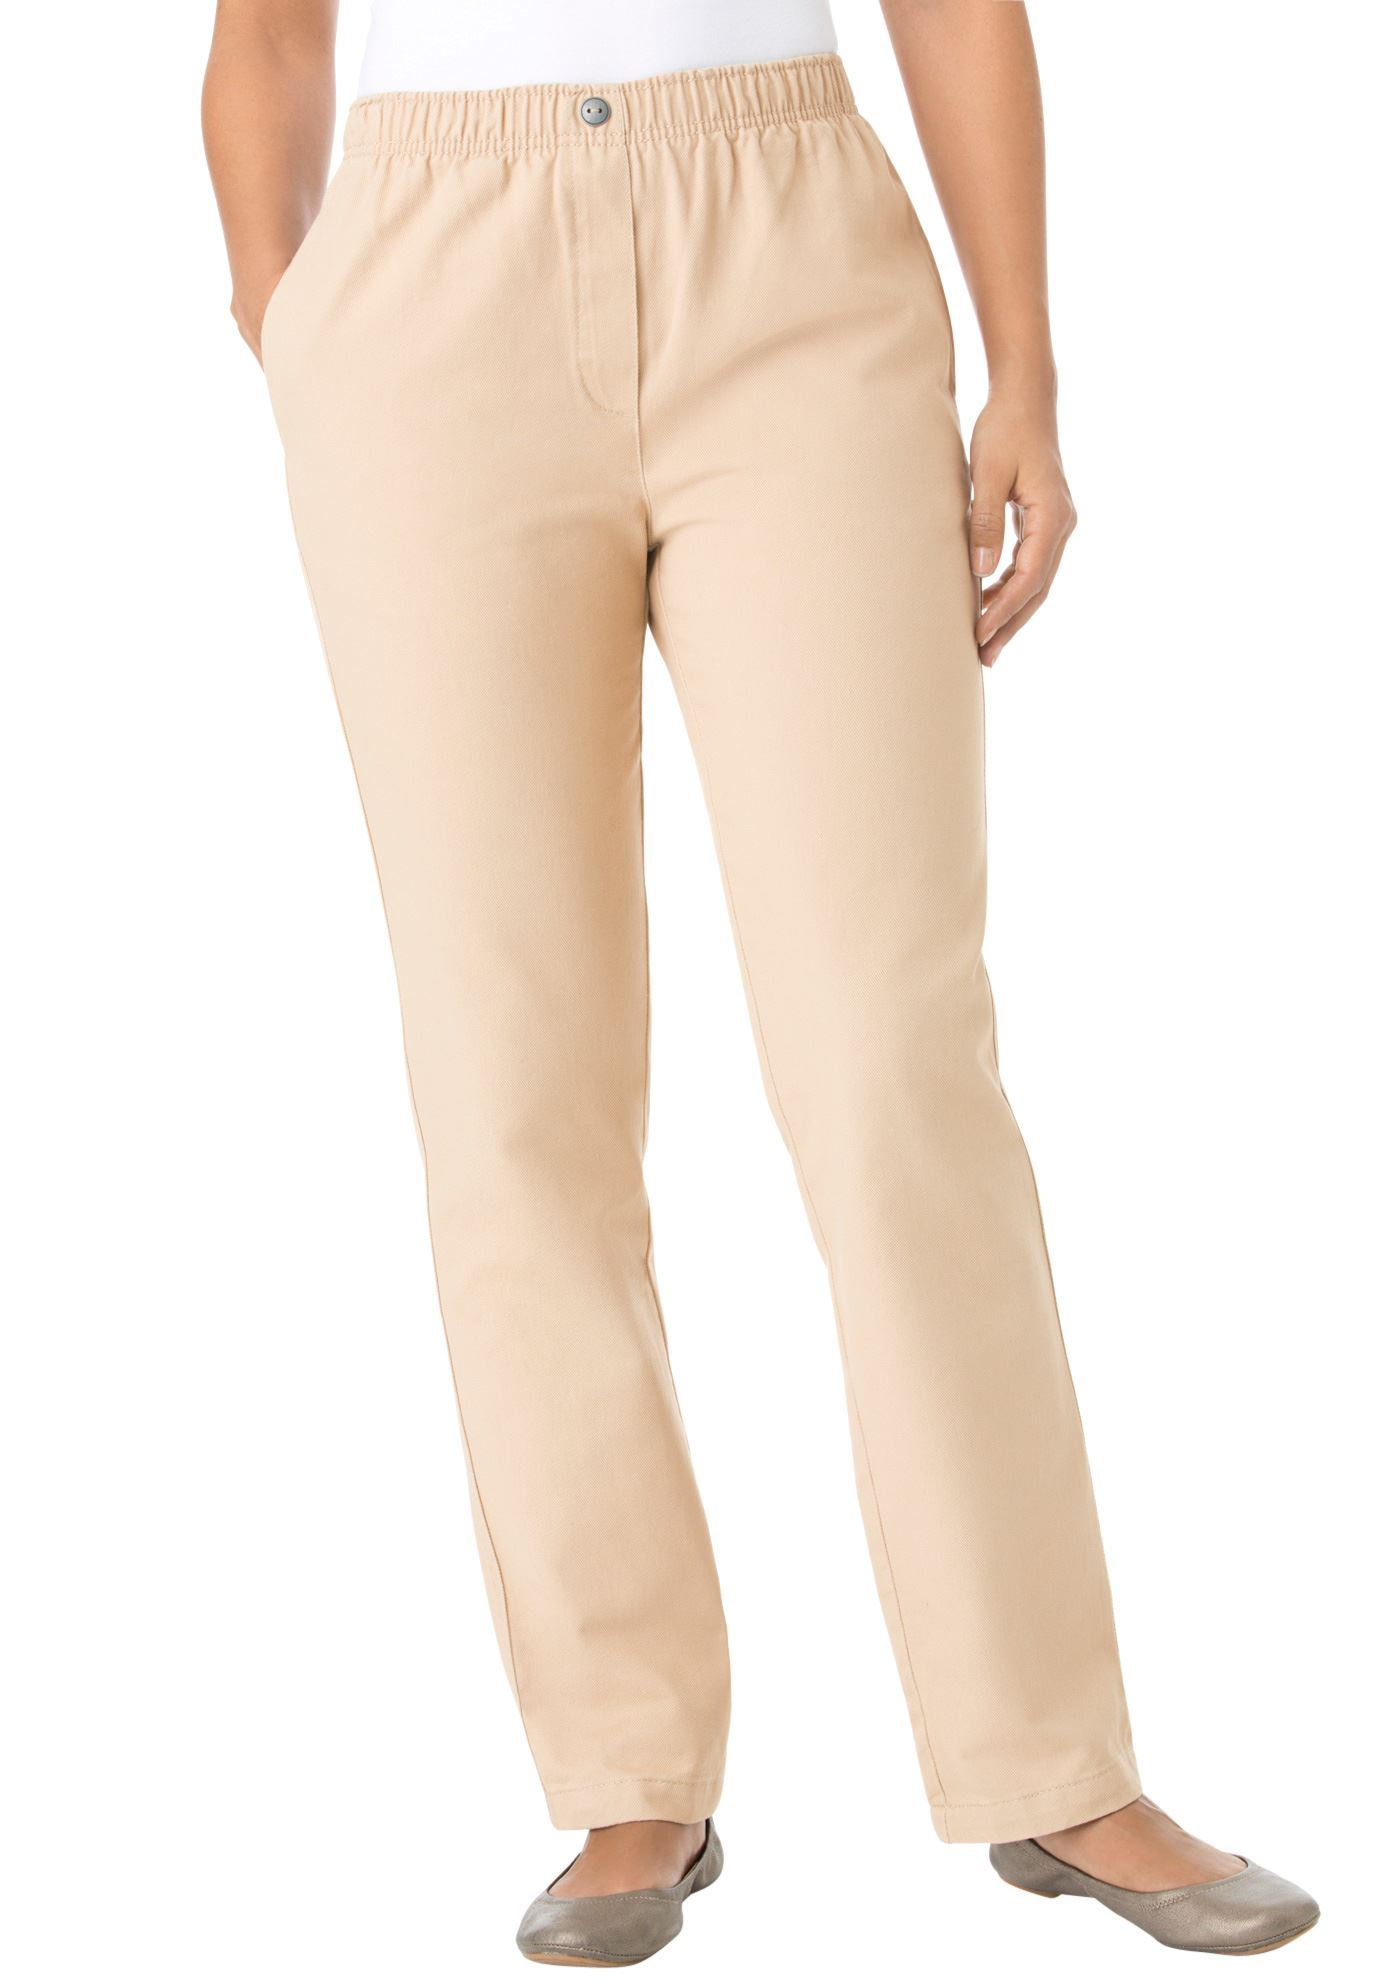 100% Cotton Comfort Pull On Jean, NEW KHAKI, hi-res